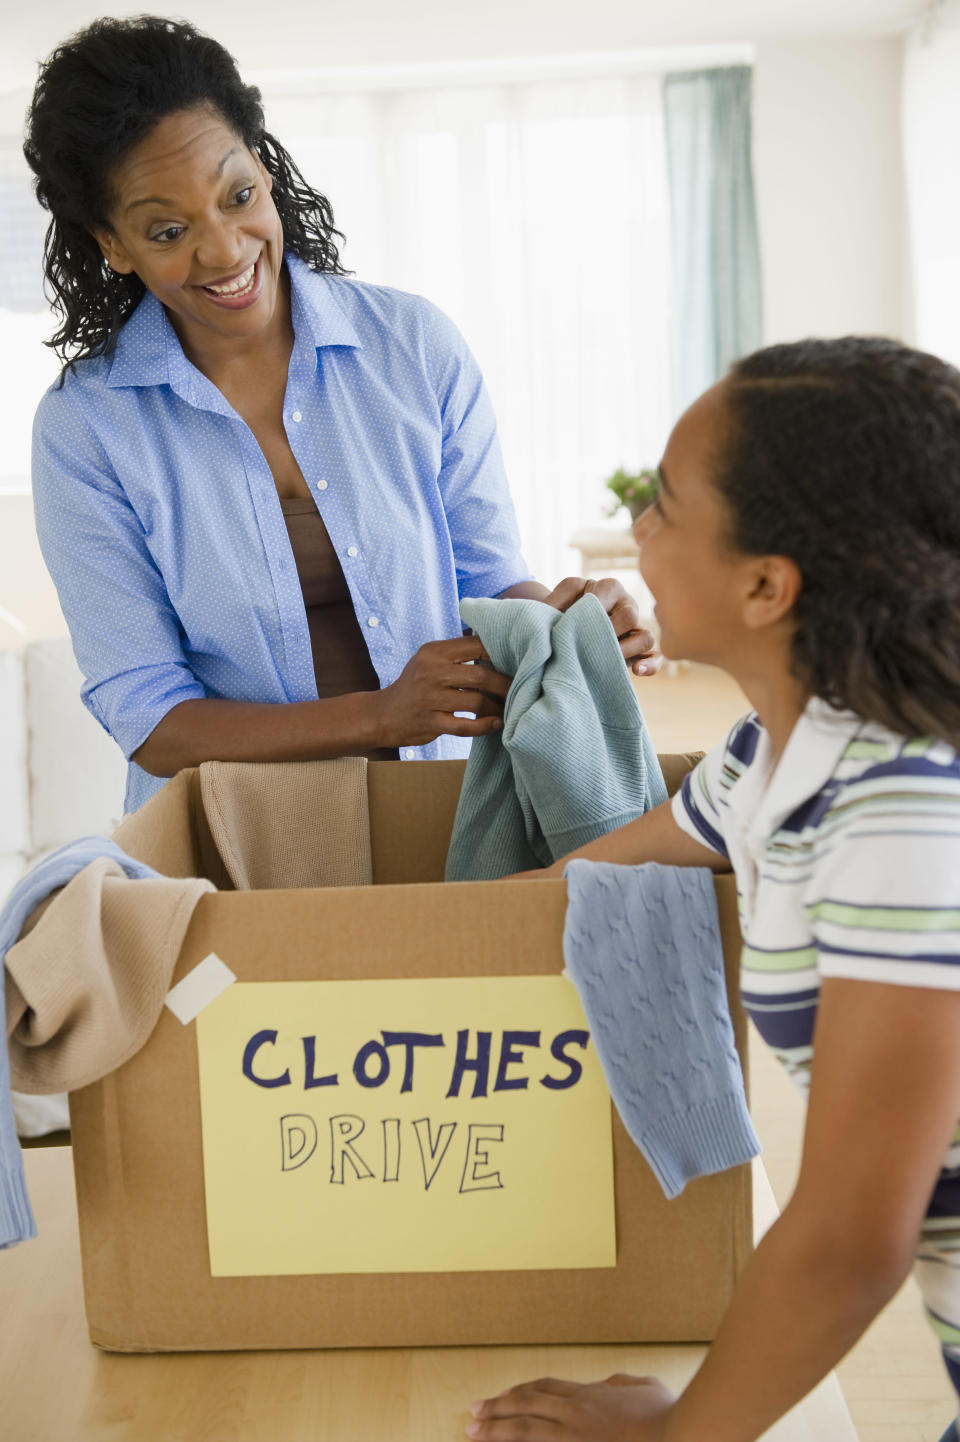 Clothes can be taken to more places than charity bins. Photo: Getty